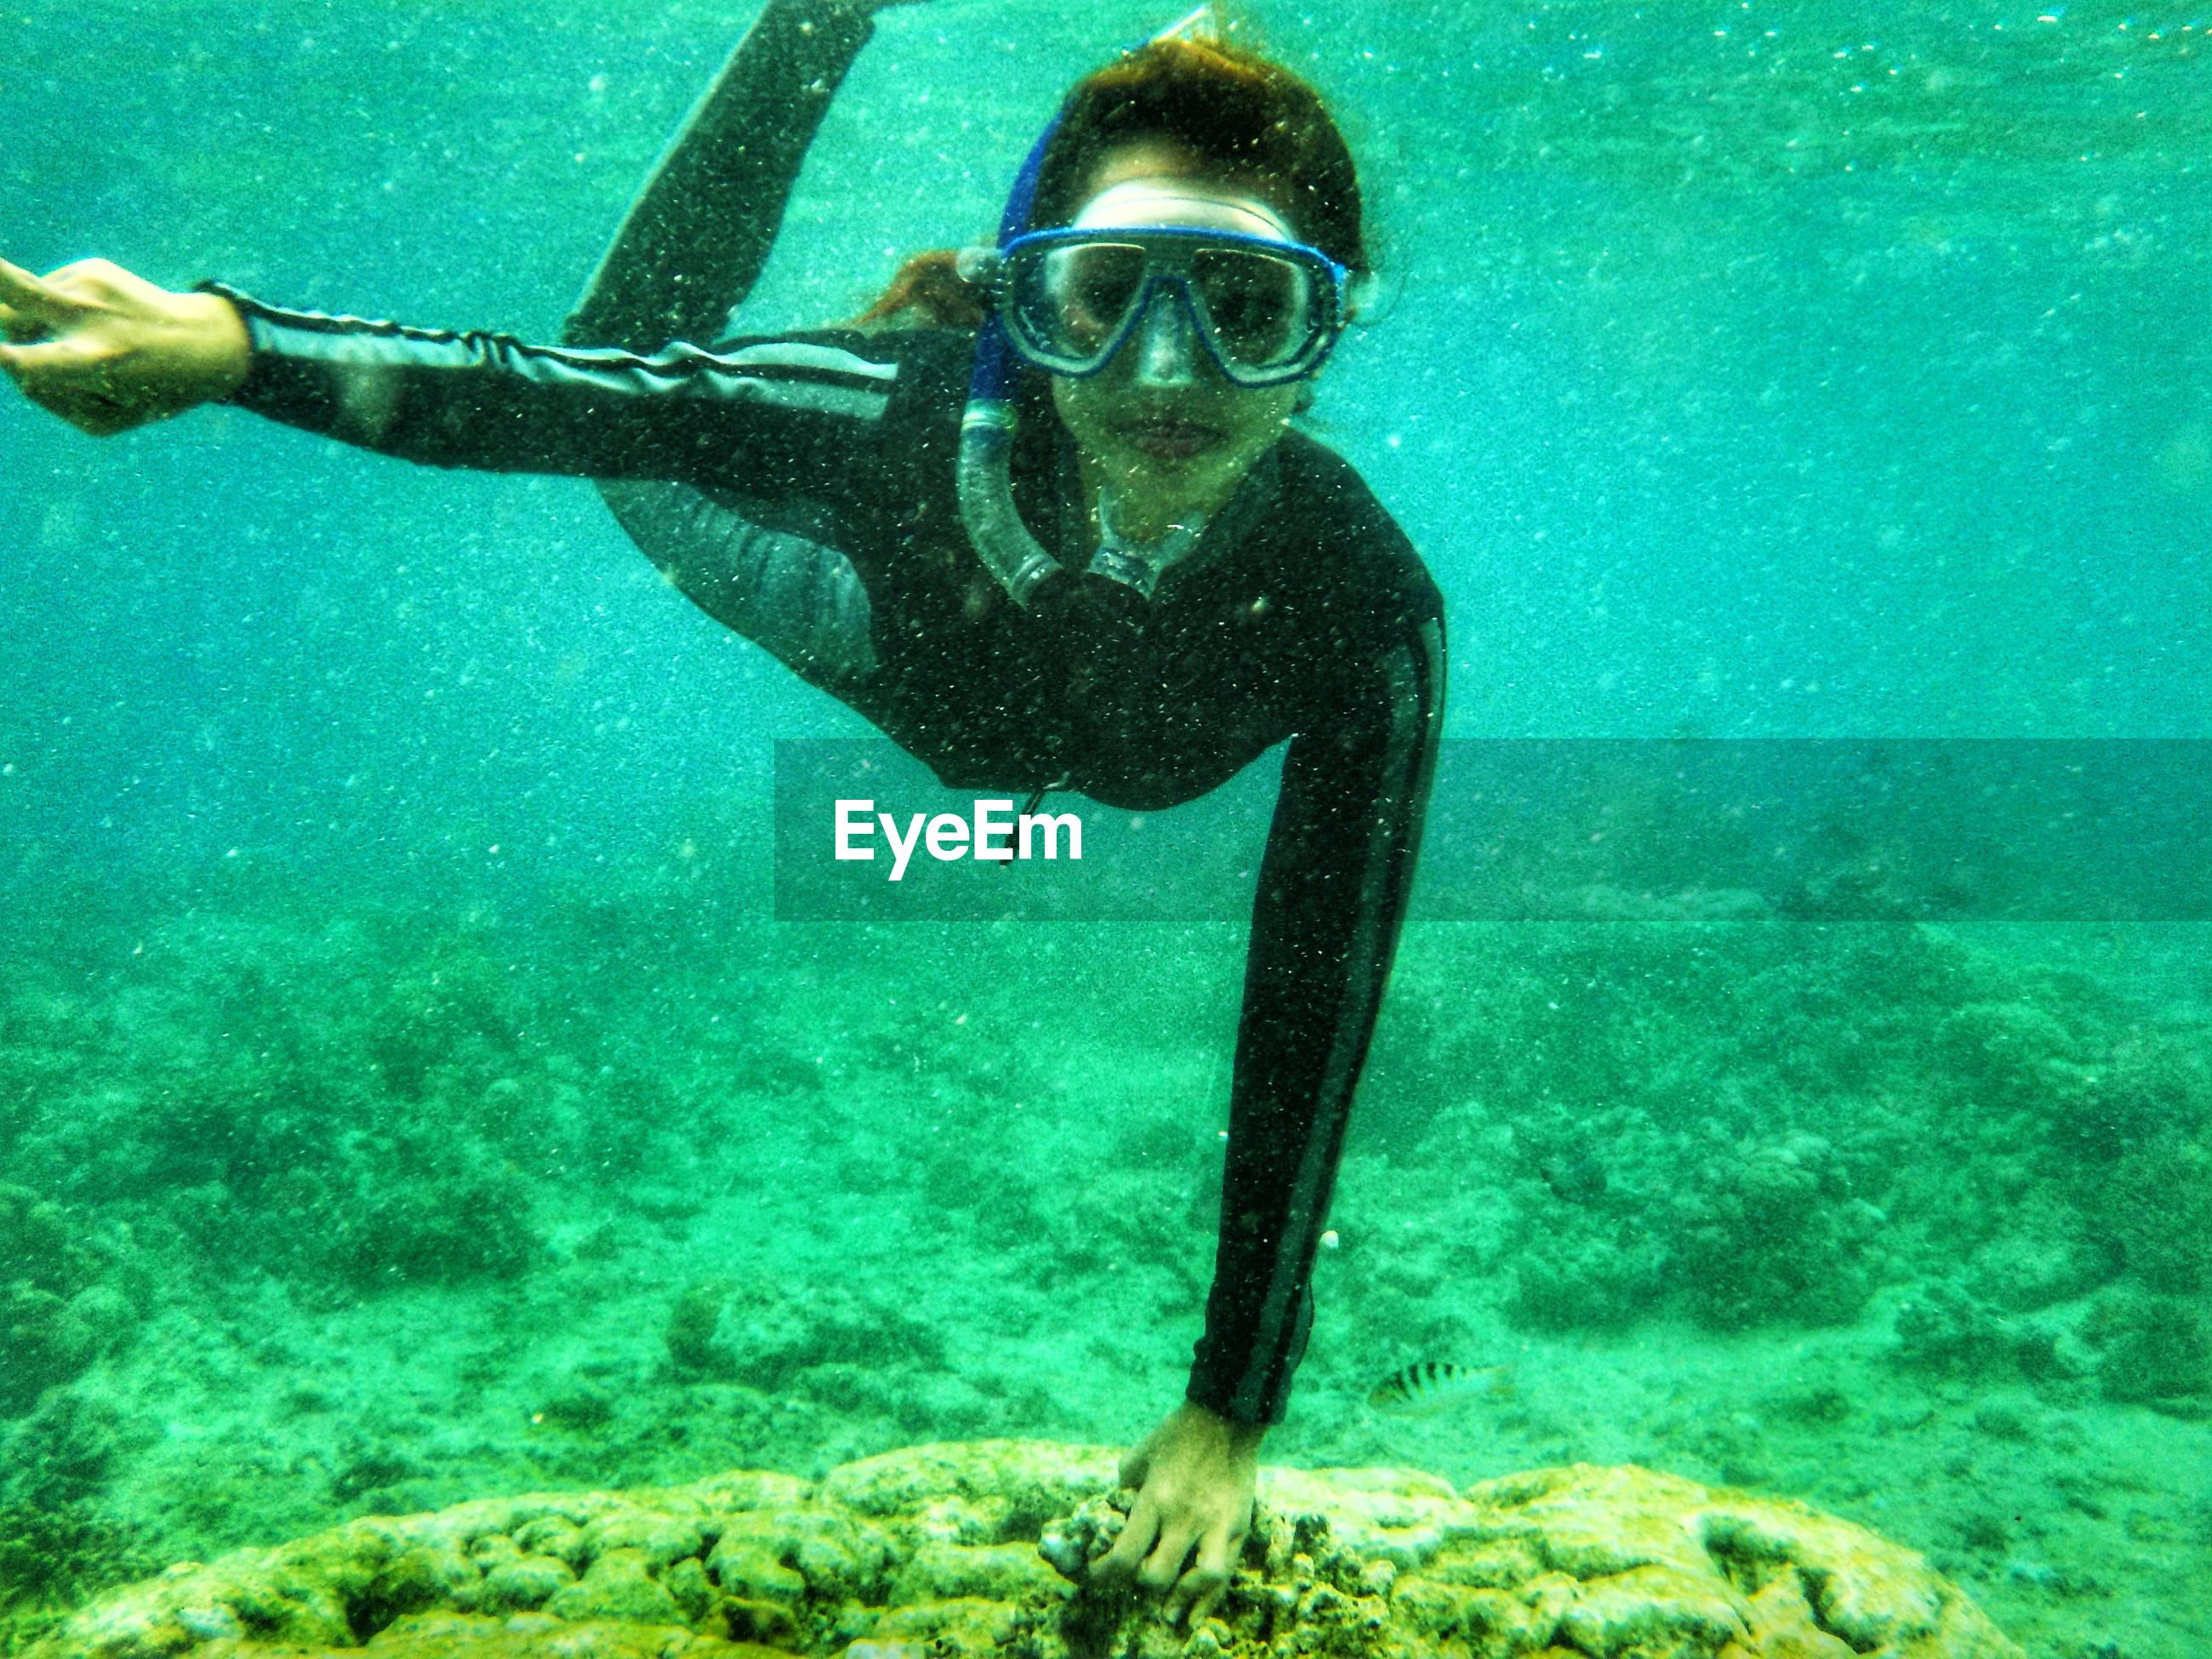 underwater, undersea, sea, water, swimming, adventure, swimming goggles, scuba diving, scuba mask, one person, looking at camera, snorkeling, leisure activity, portrait, lifestyles, real people, sea life, nature, day, outdoors, young adult, scuba diver, close-up, people, adult